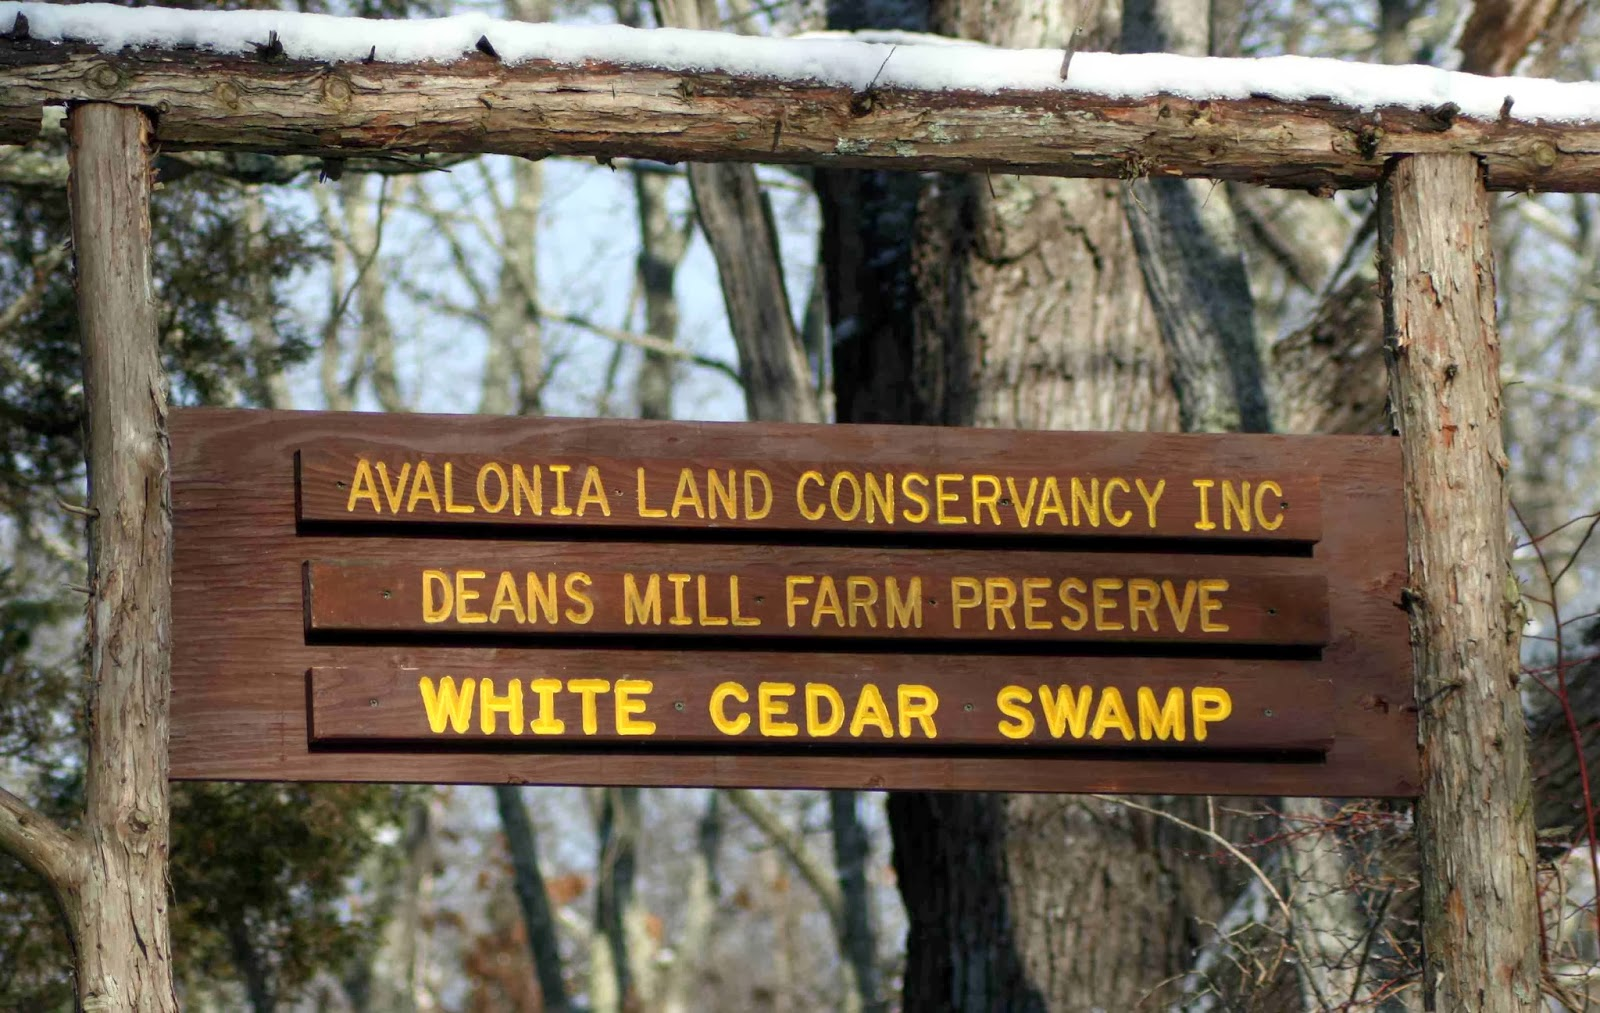 Stonington Is Host To Rare Atlantic White Cedar Swamp